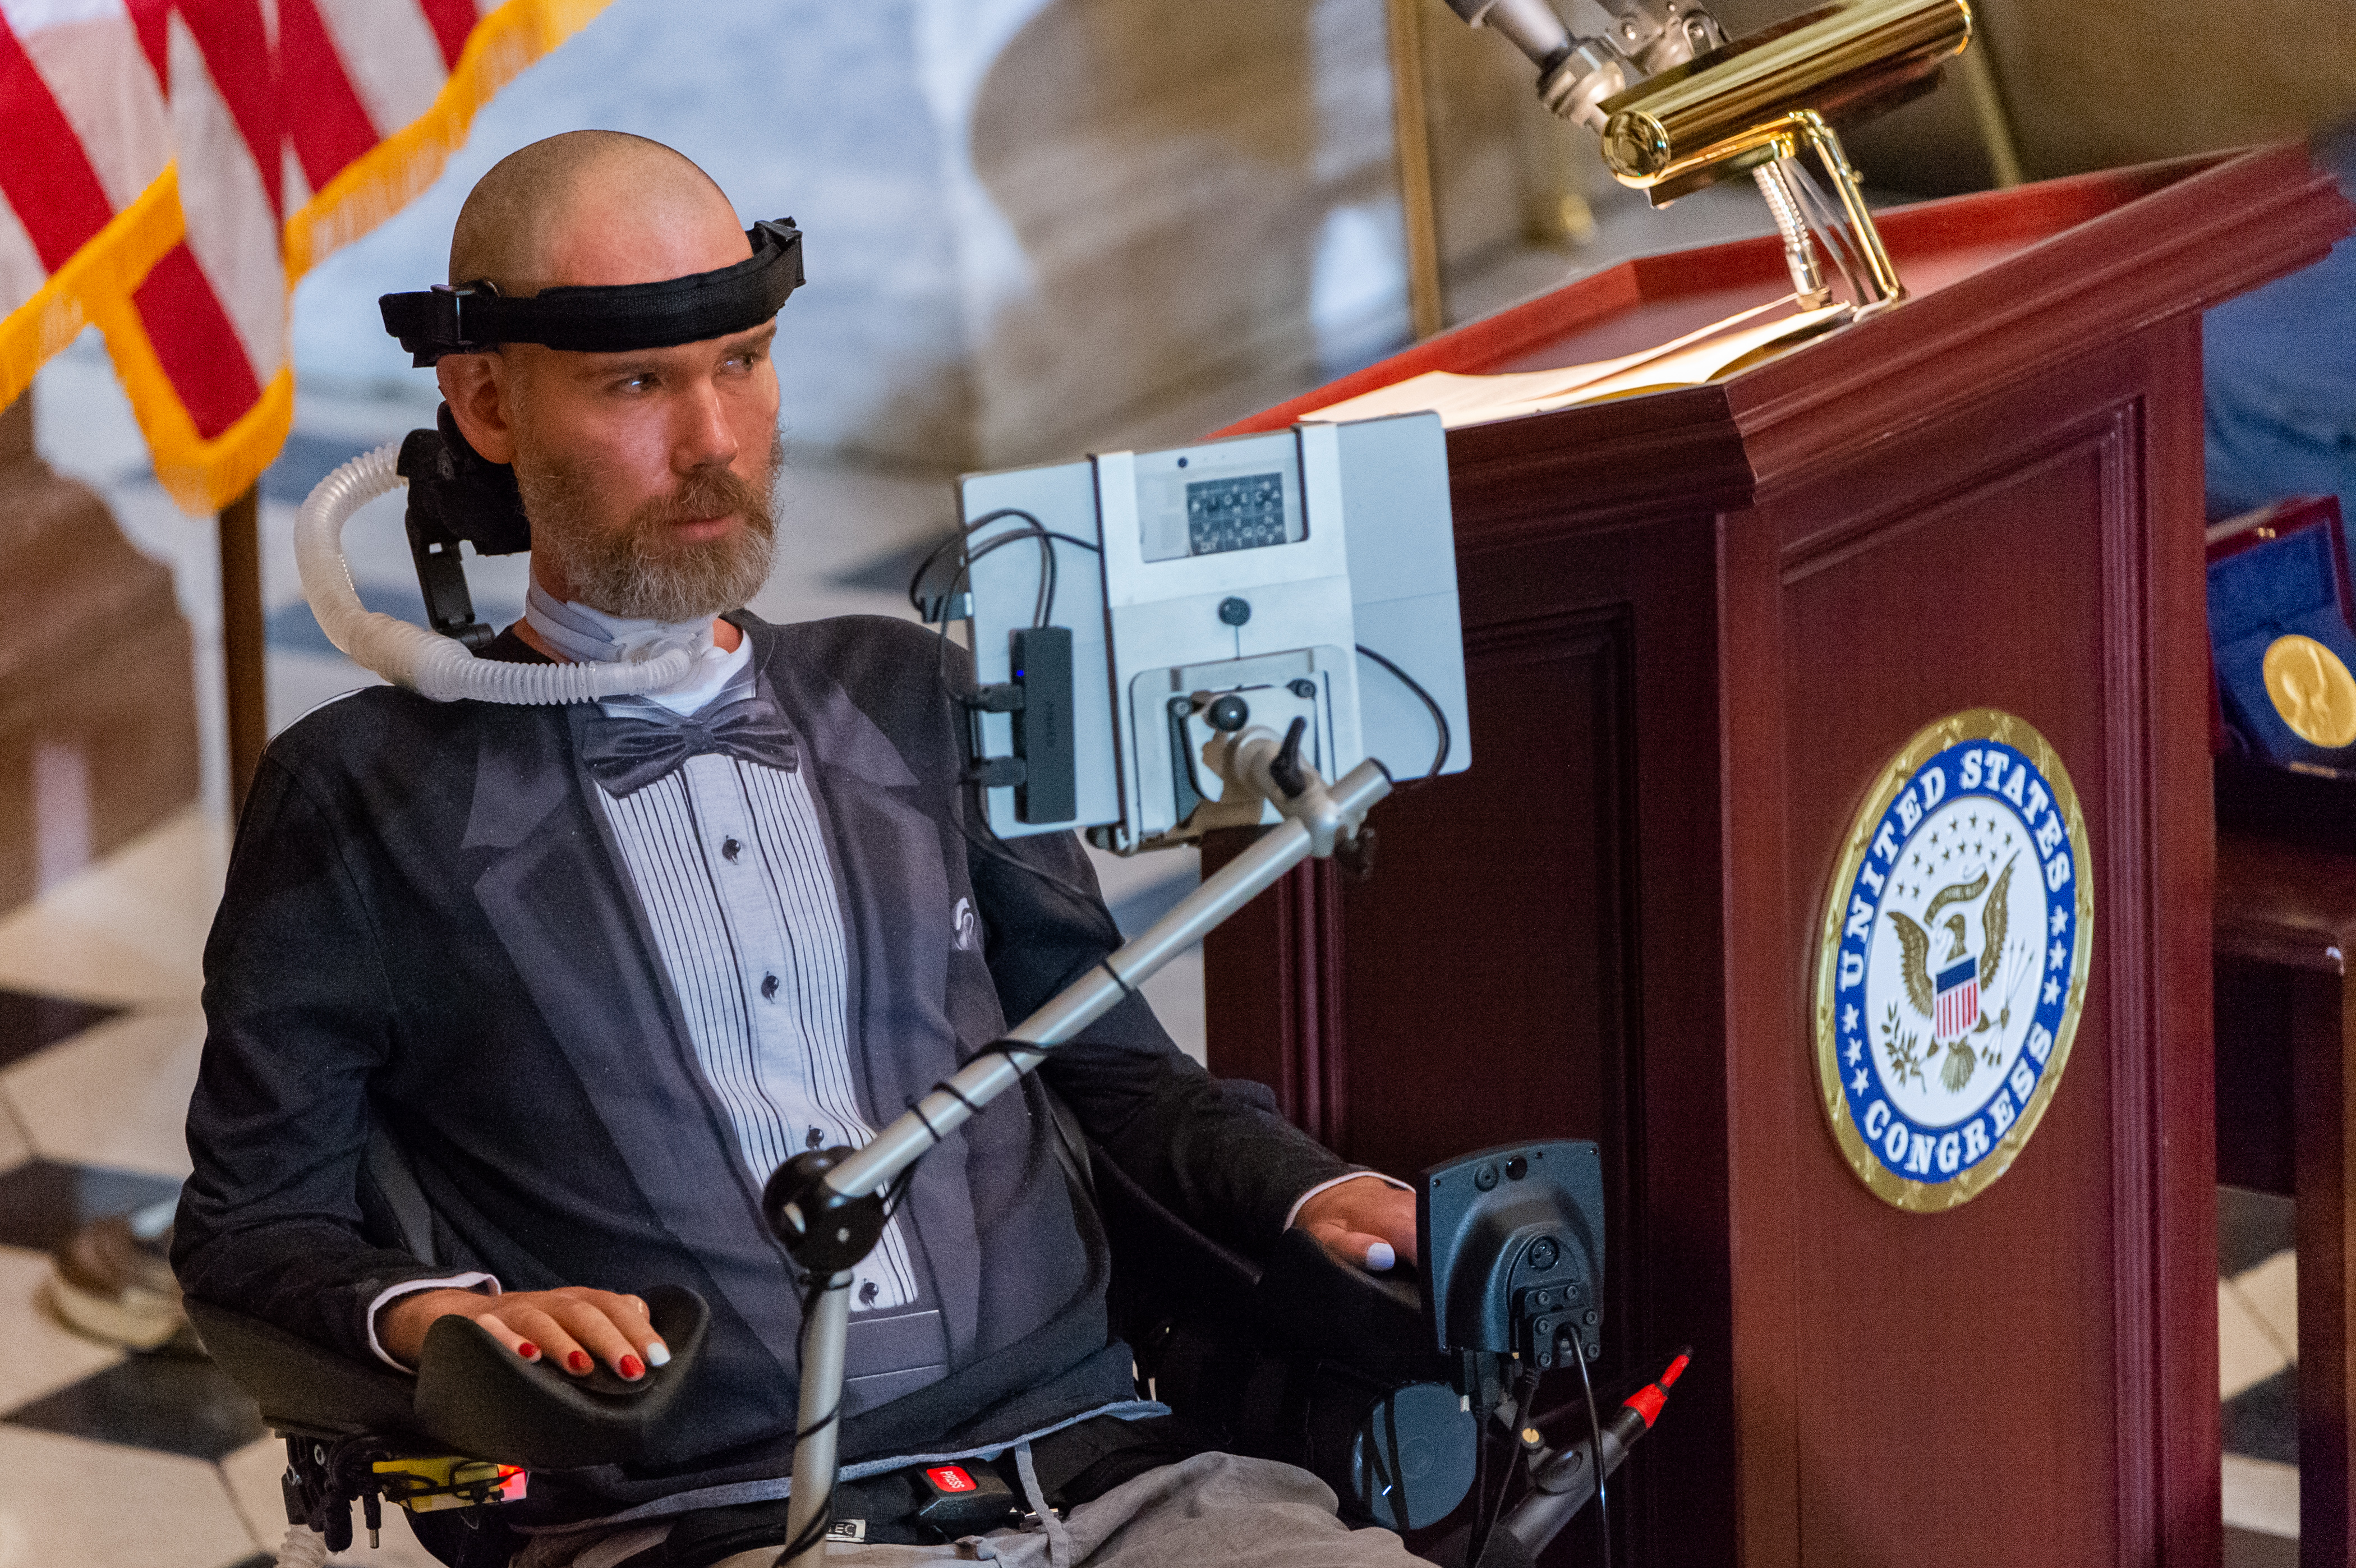 Steve Gleason, former NFL player and ALS advocate, addressed guests in Statuary Hall.